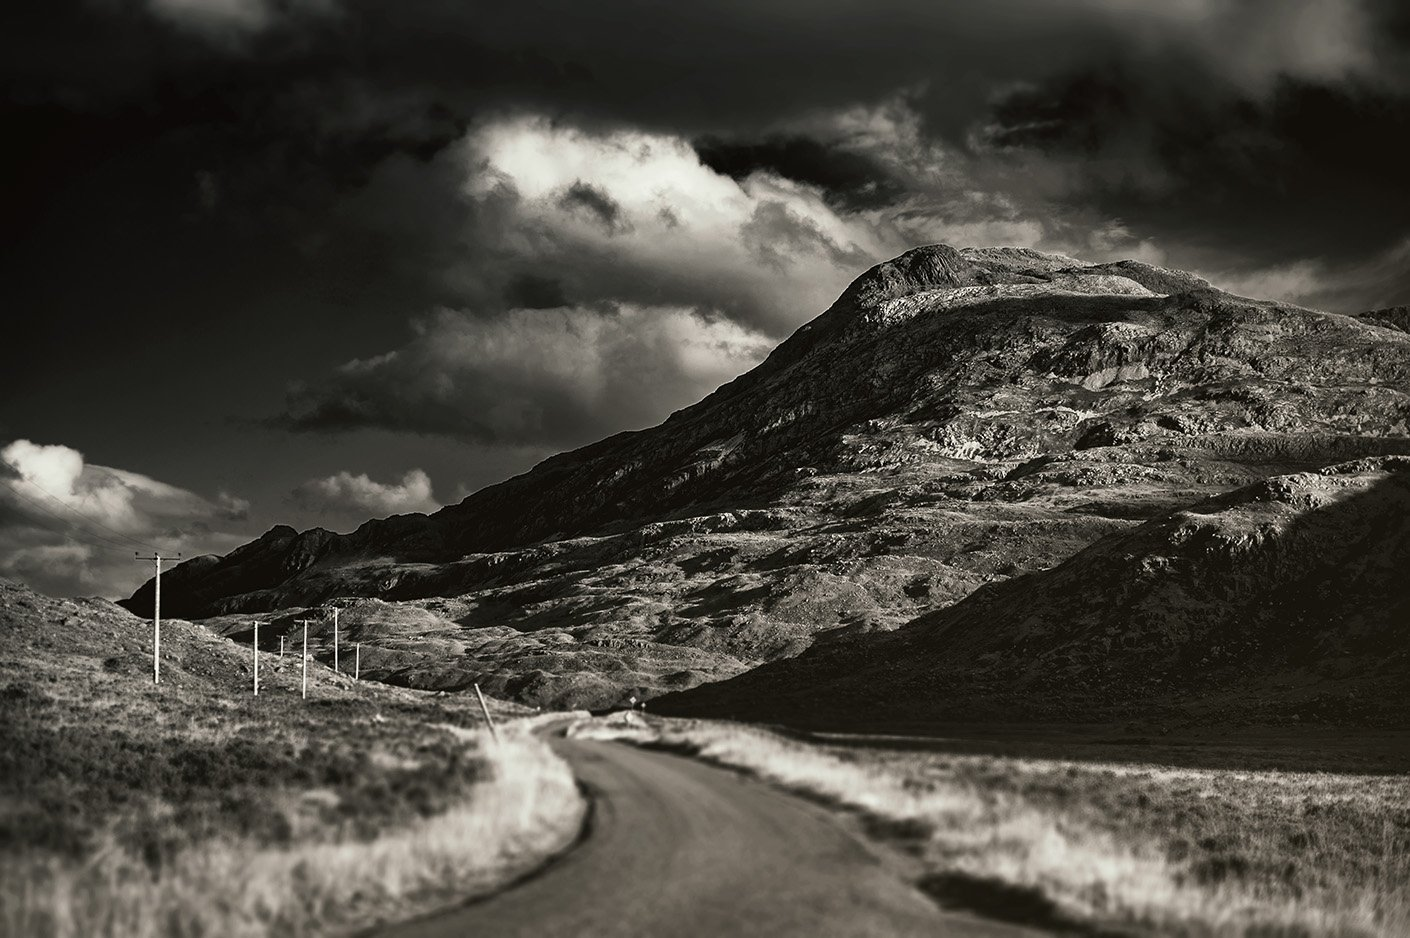 black_and_white_landscape_photography_15.jpg